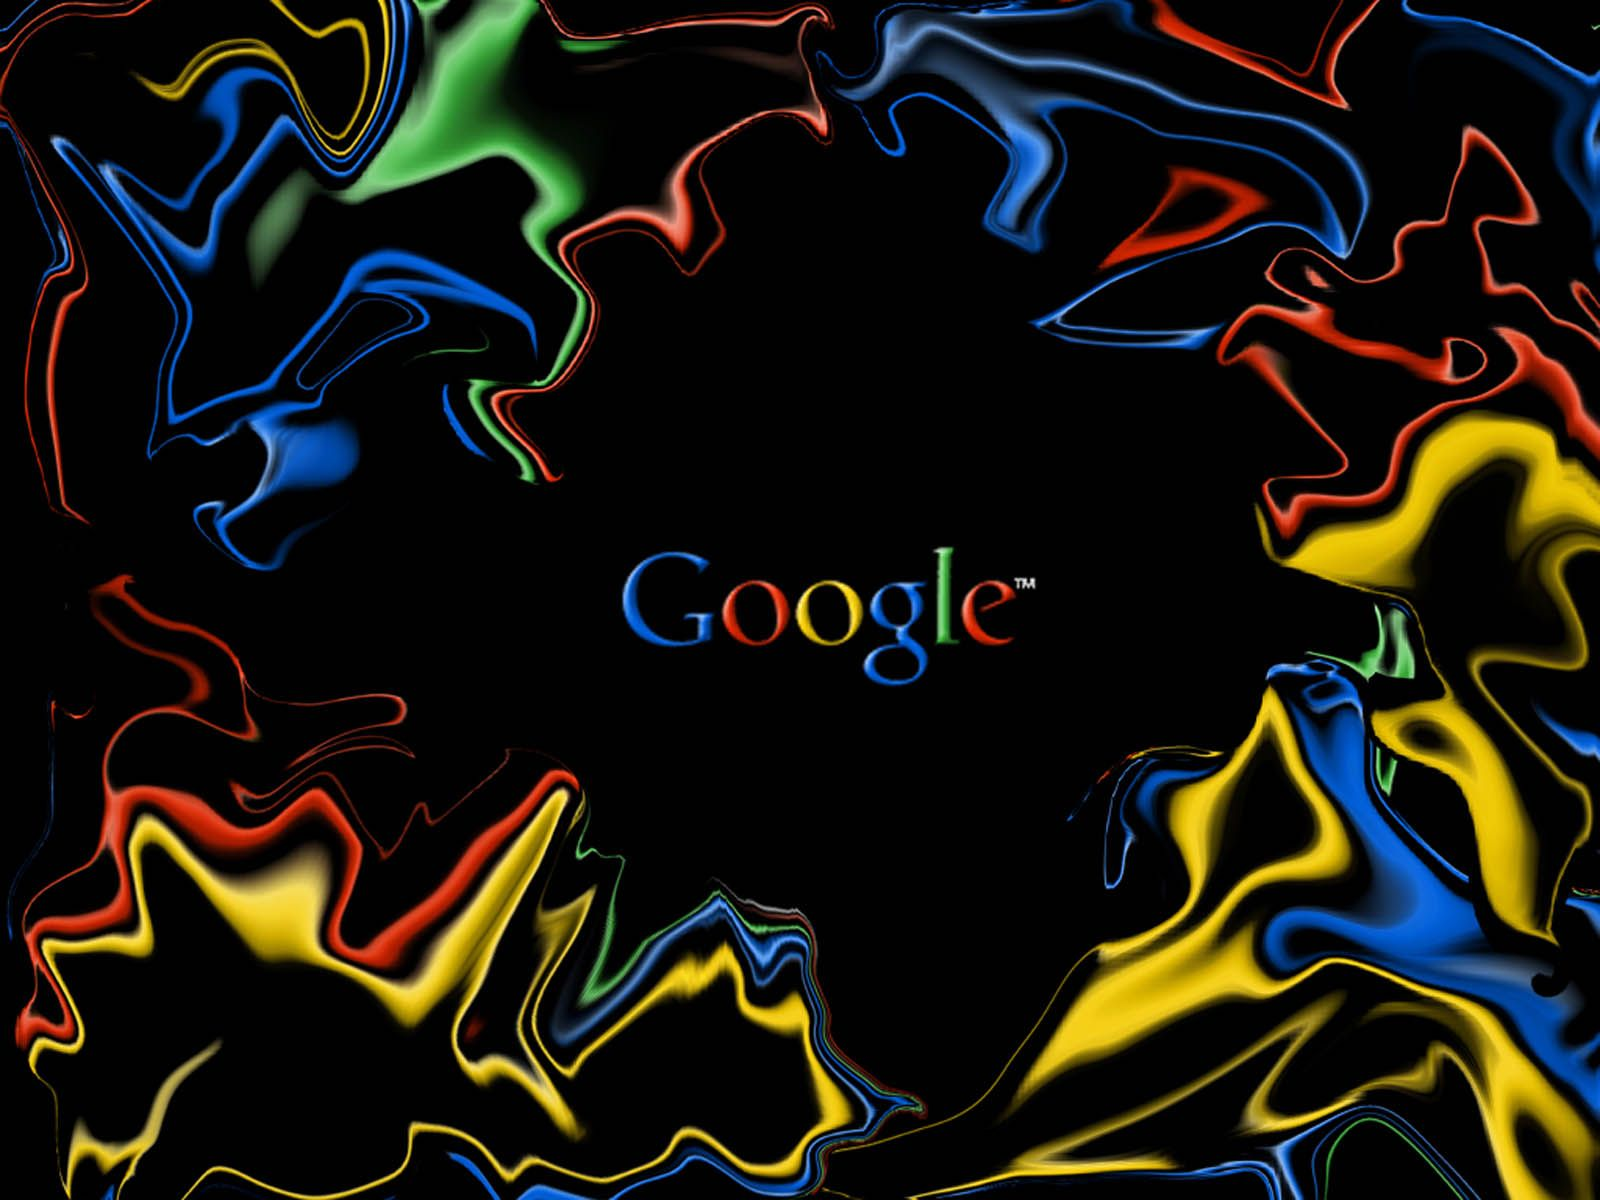 Google Wallpaper Picture Google Backgrounds, Google Desktop, Desktop Backgrounds, Cool Wallpaper, Wallpaper